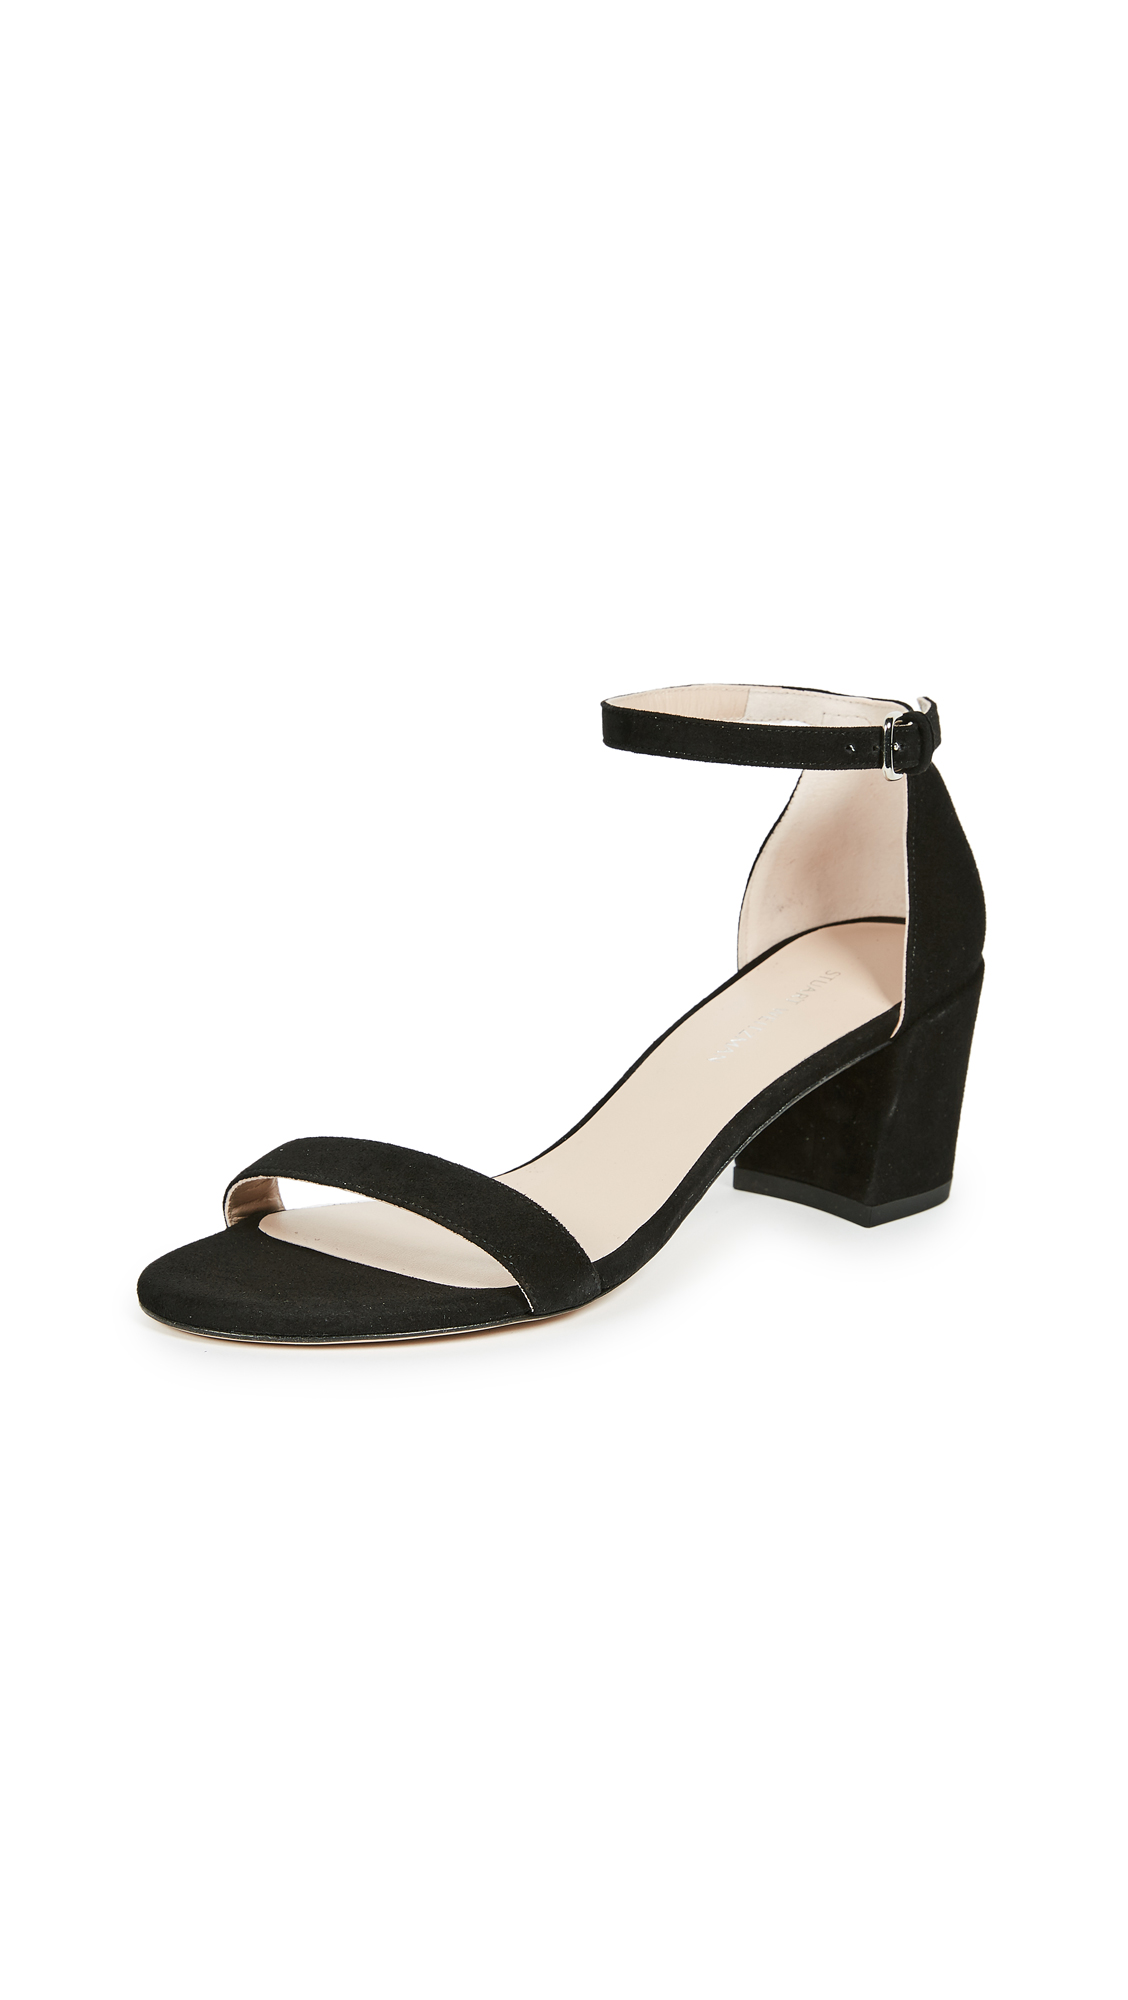 Stuart Weitzman Simple Sandals - Black